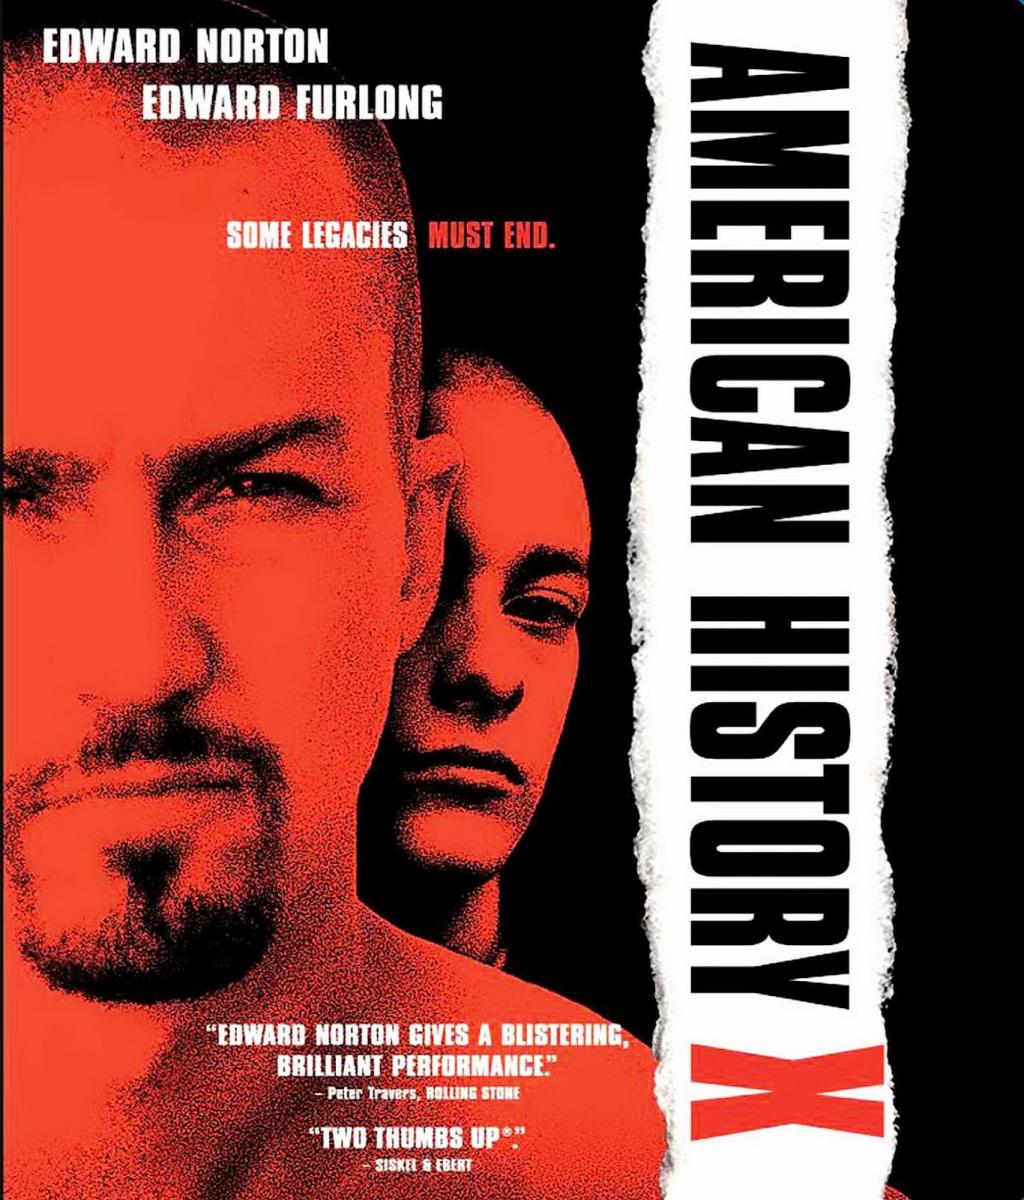 the humanity lost in the prejudice of racism and supremacy in american history x a film by tony kaye American history x one of those films that will haunt 'american history x' - tony kaye film tony kaye's american history x explores racism in contemporary.